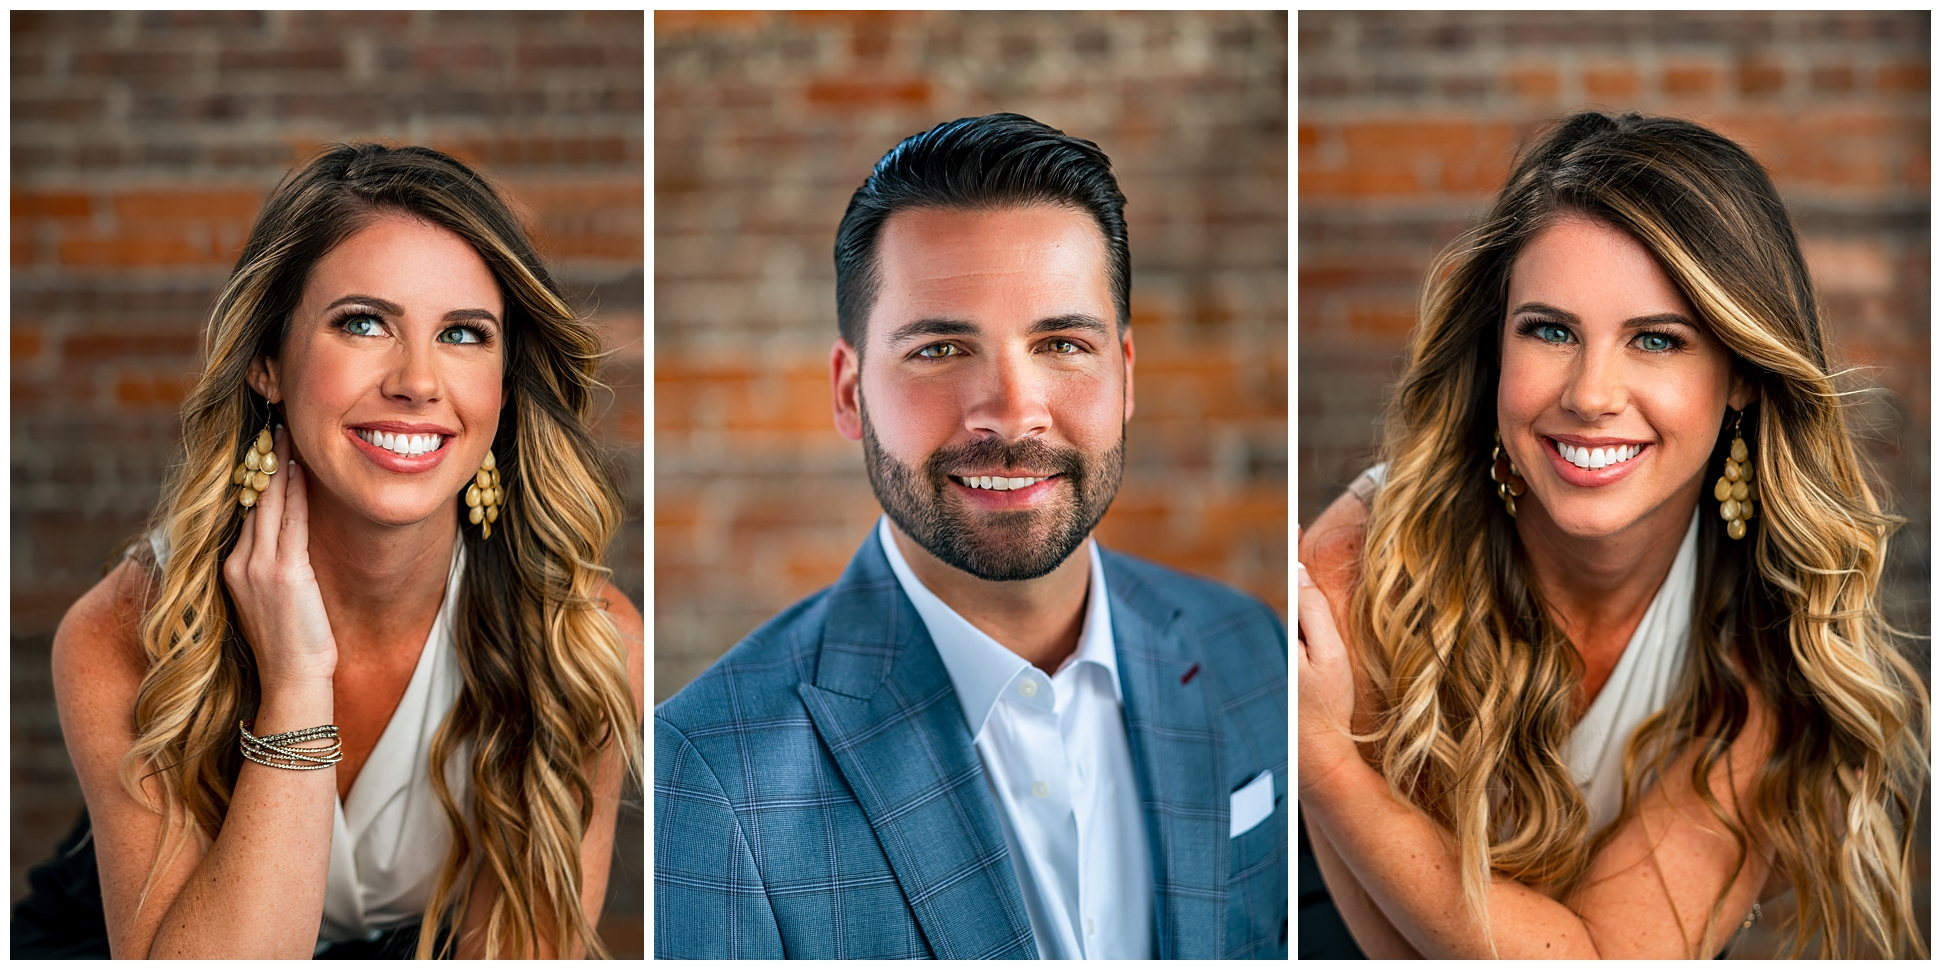 jackie-dave-jenkins-tampa-financial-advisor-branding-head-shot-portrait-client-interactions-university-ut_0003.jpg